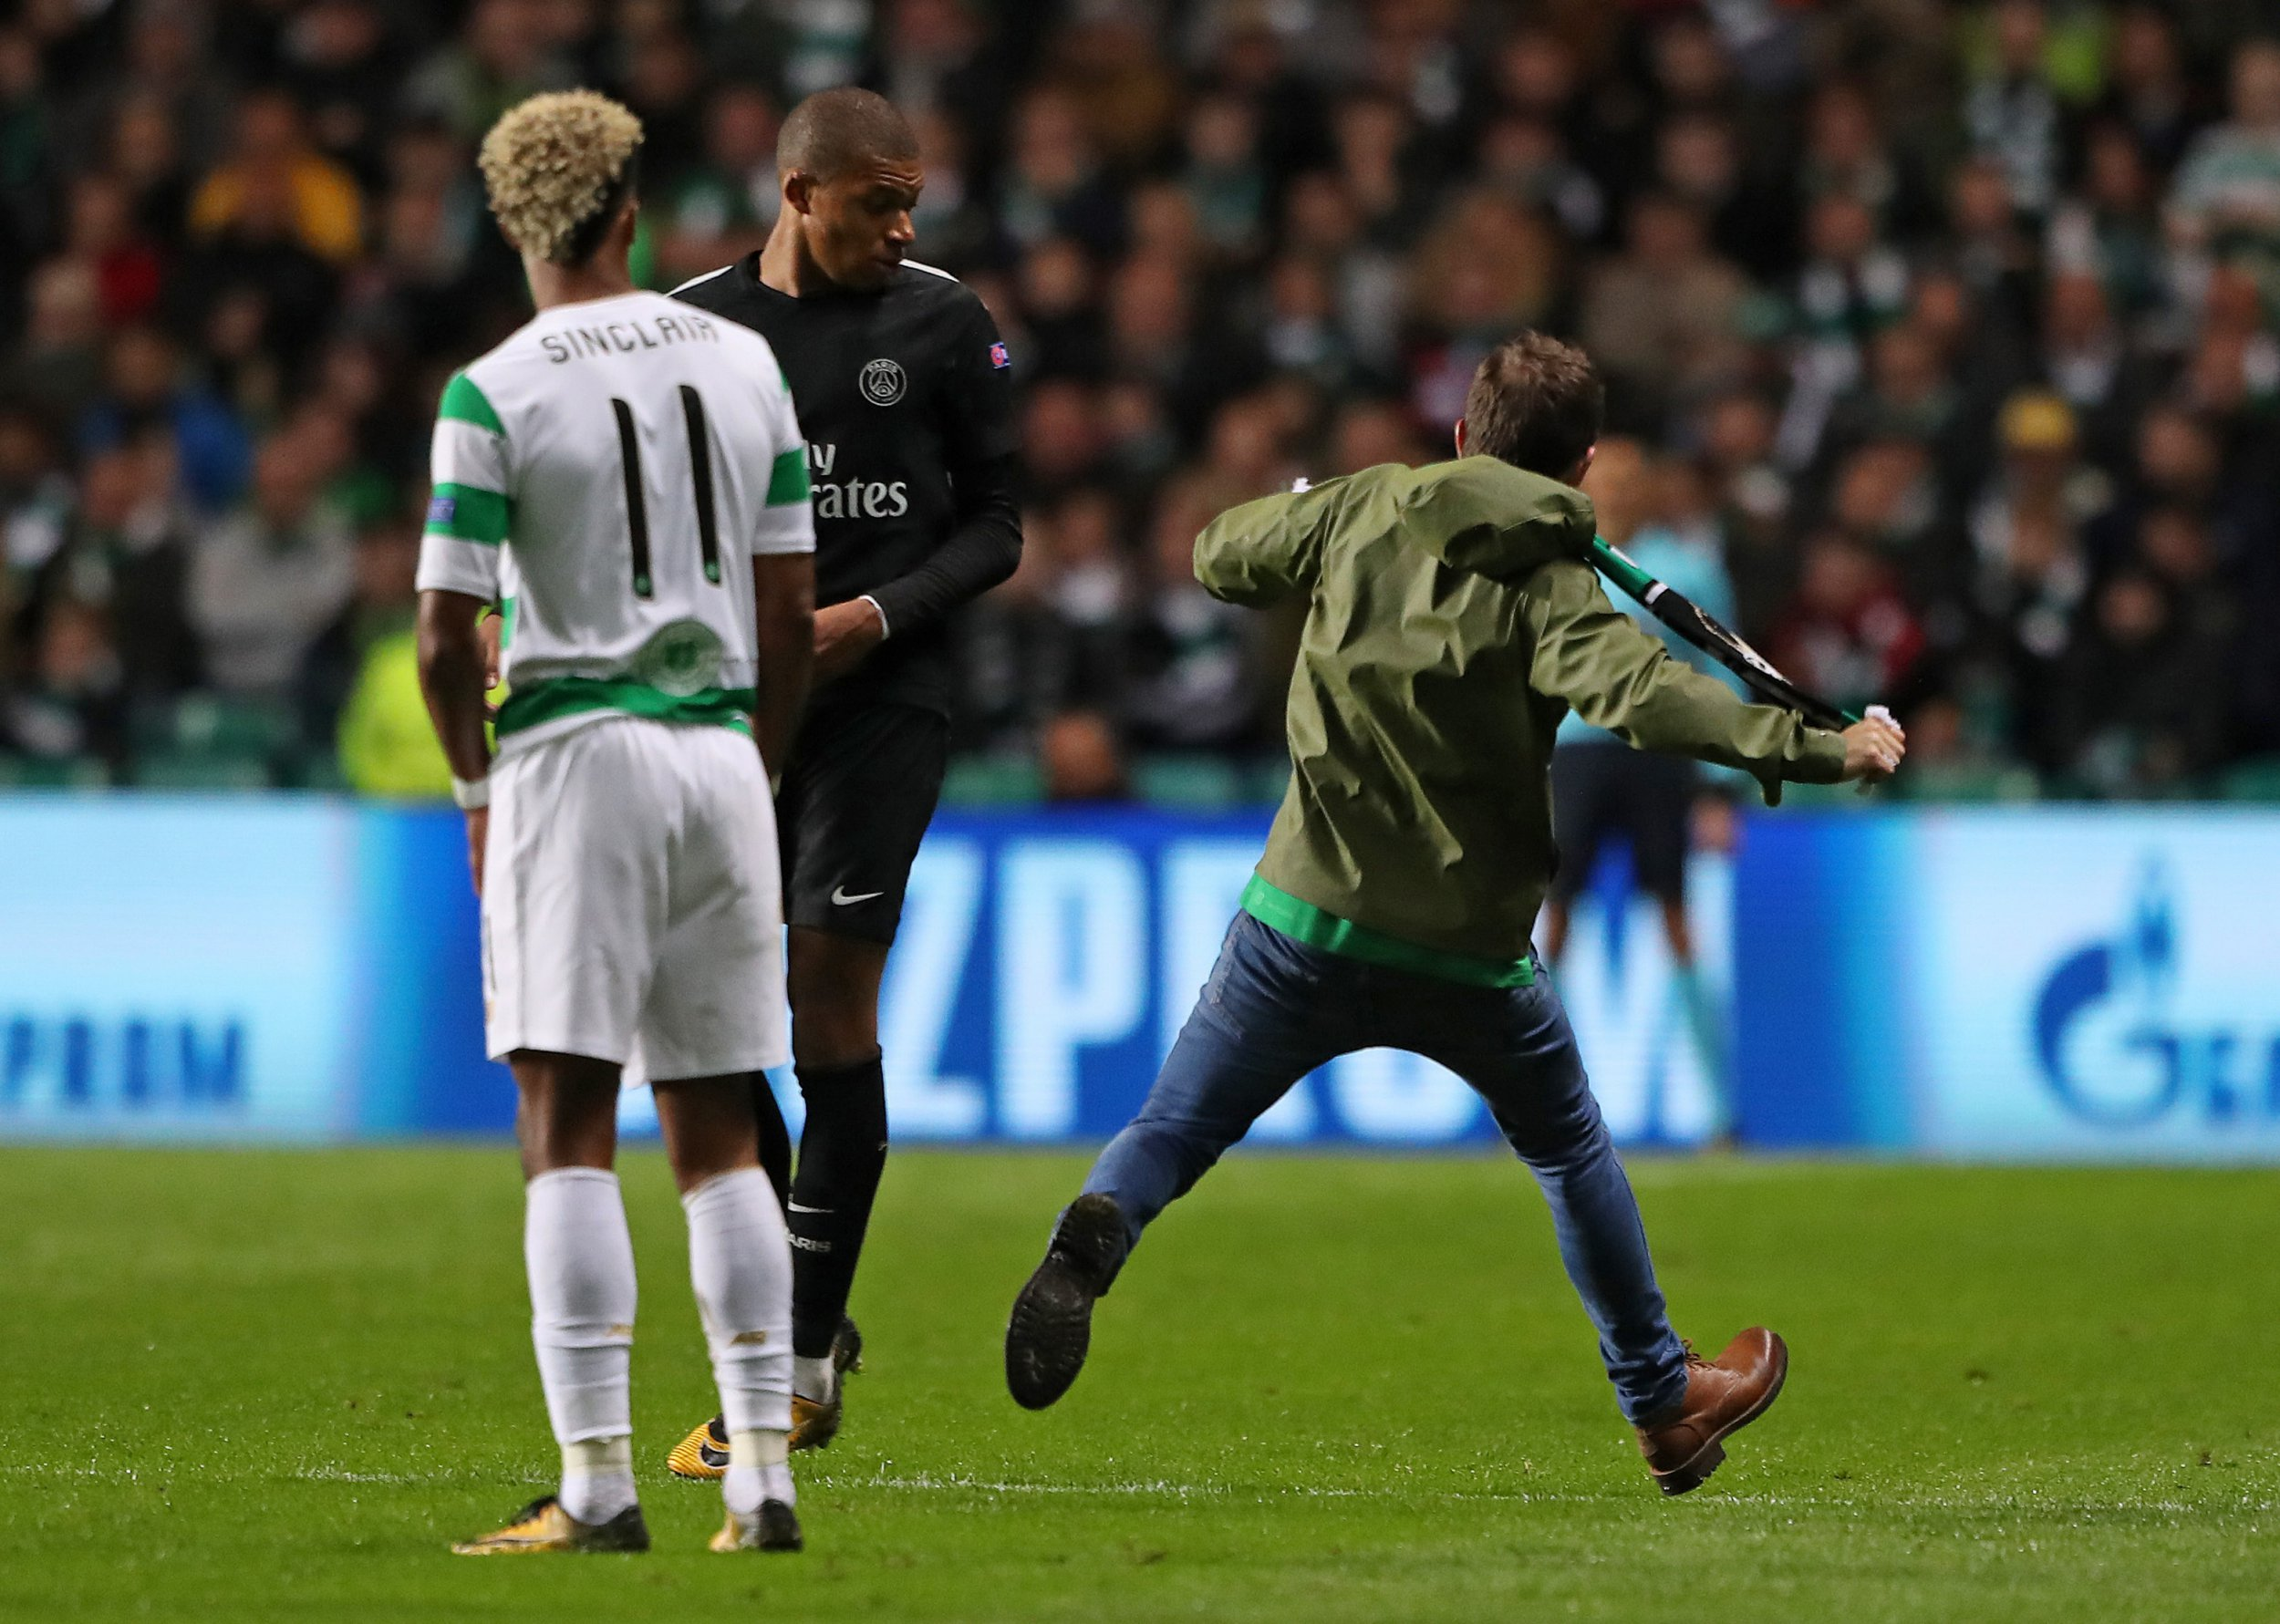 Celtic fan aims kick at Kylian Mbappe during Champions League clash with PSG